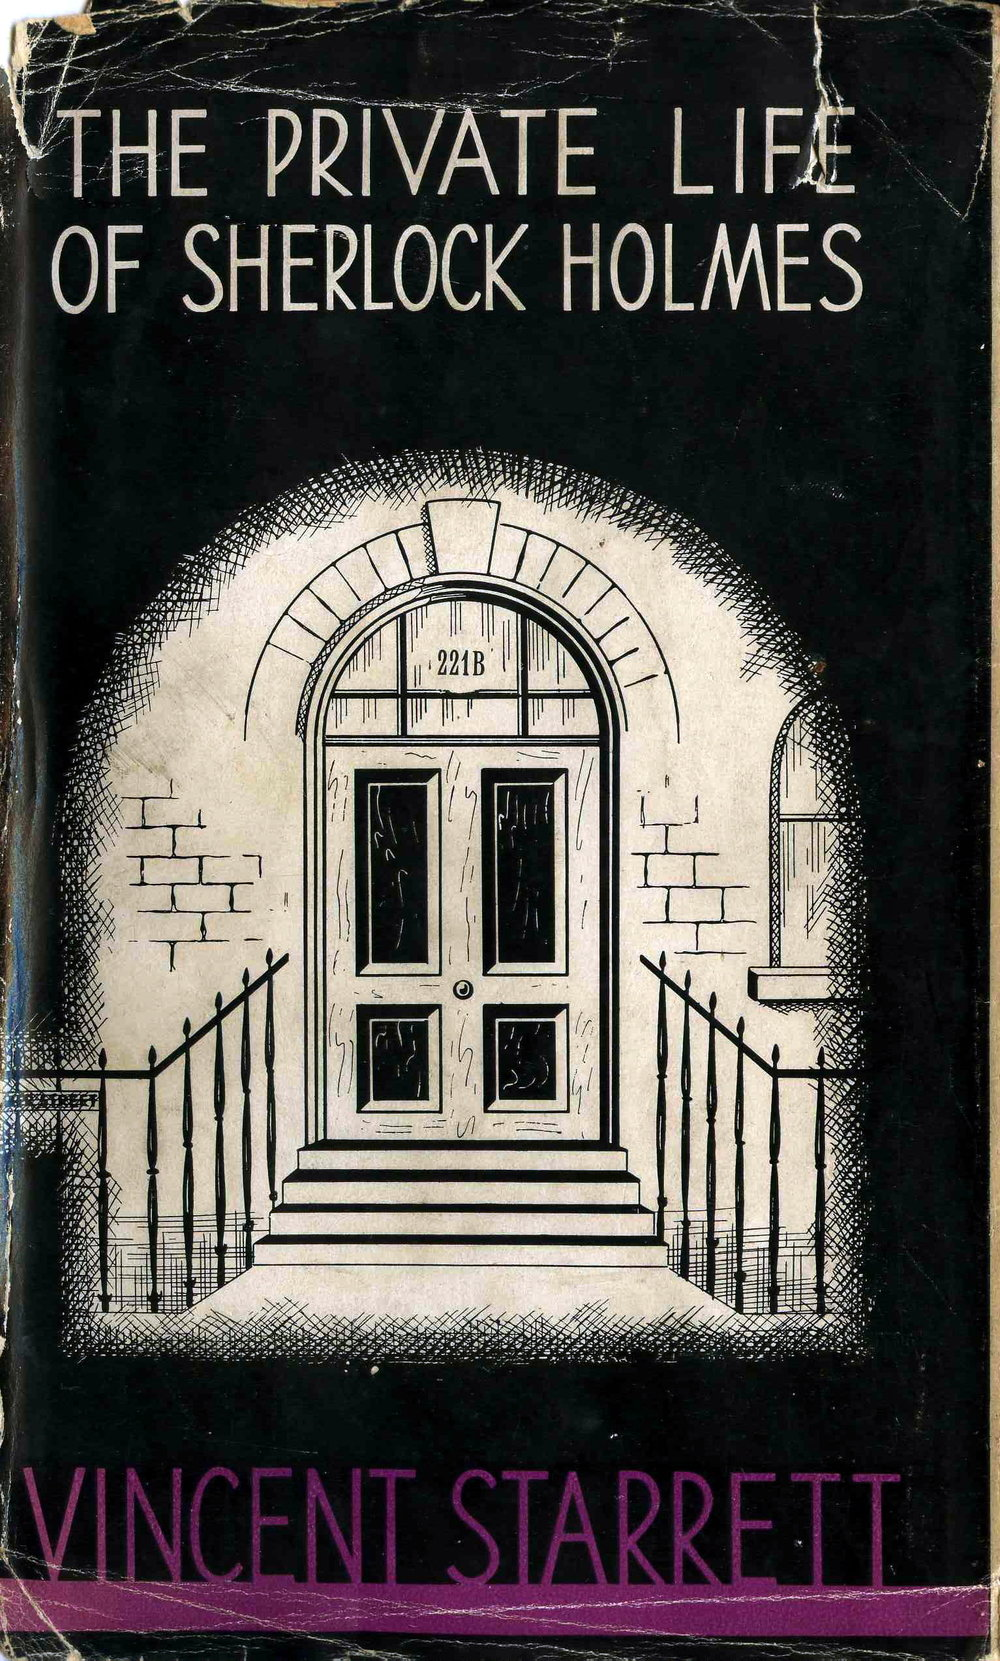 The dust jacket cover with its romantic image of 221B Baker Street.